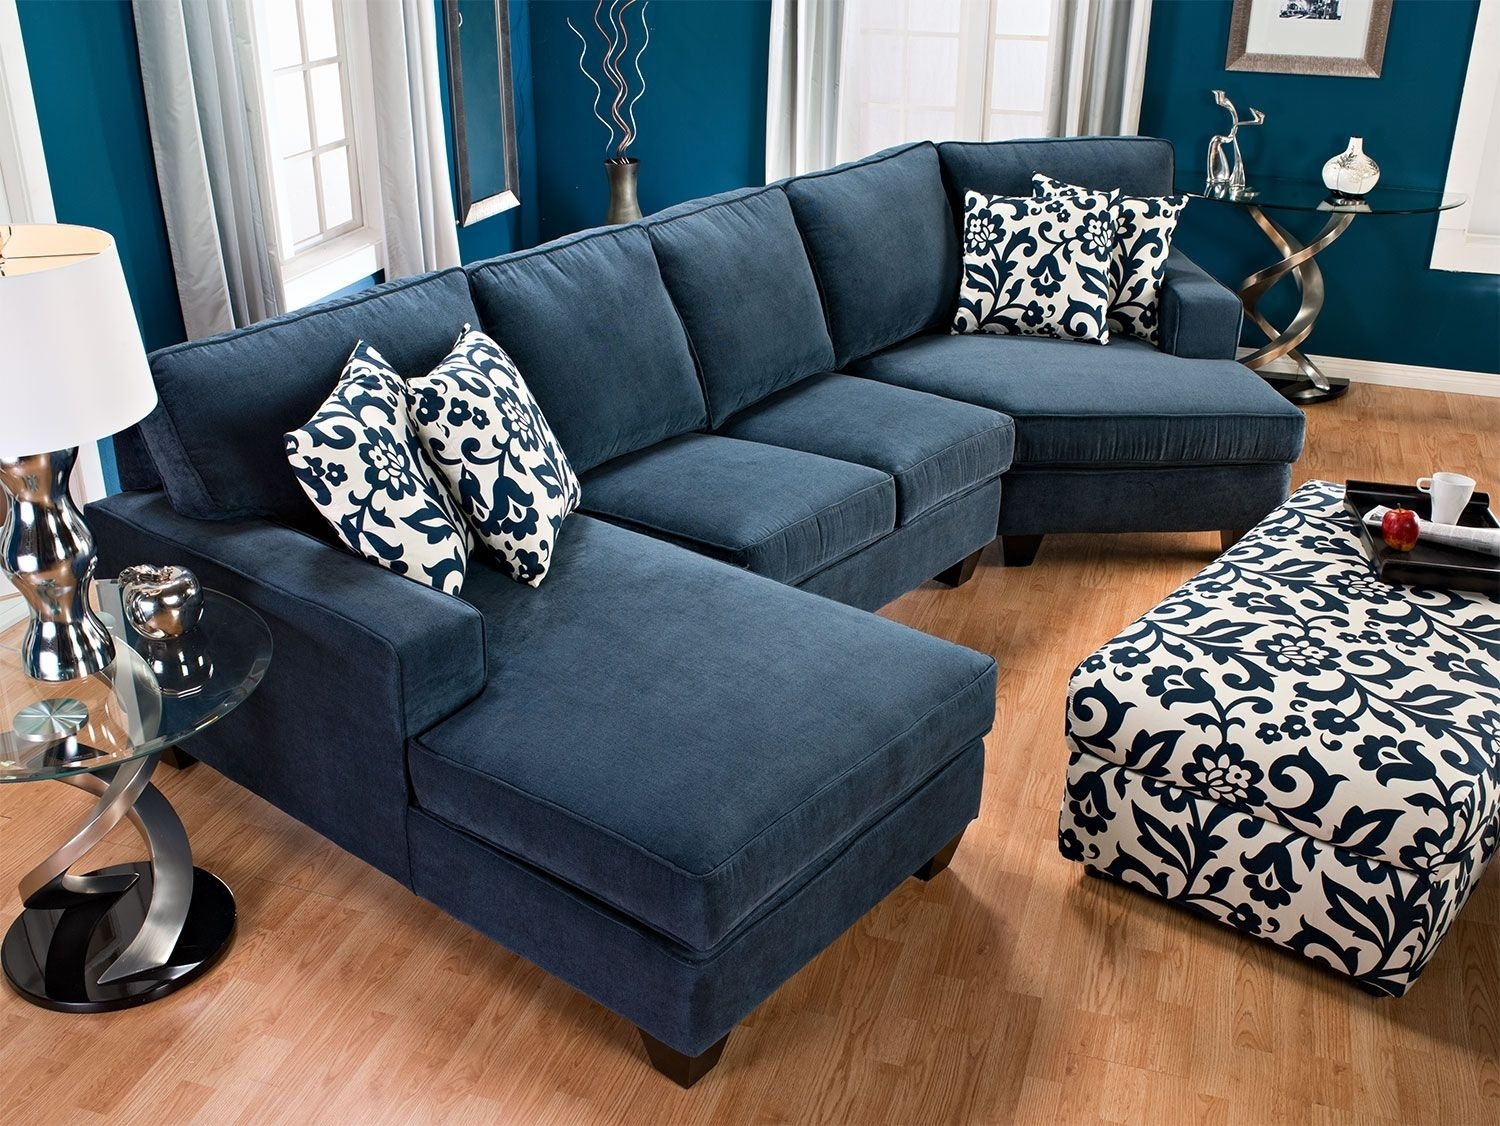 The Exact Couch We Want (View 10 of 10)